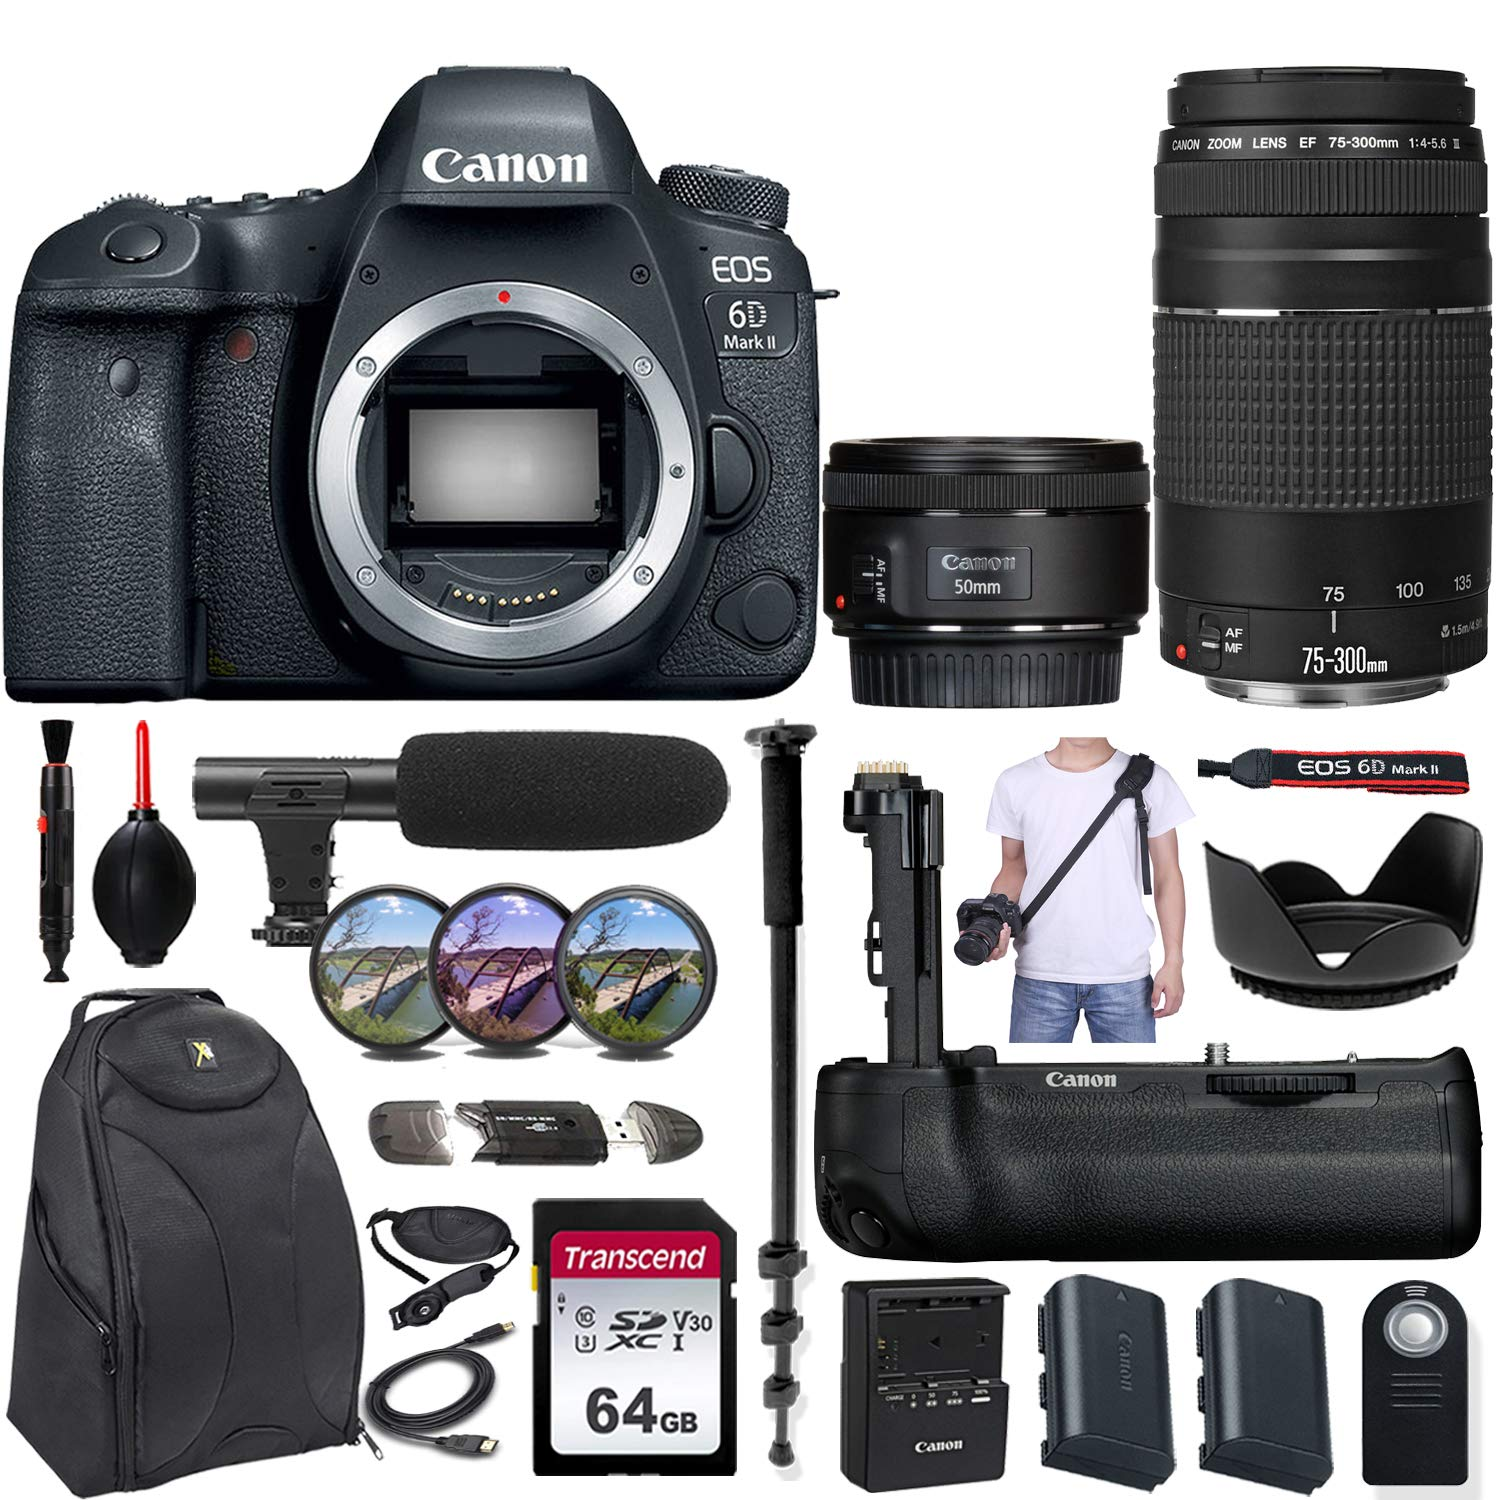 Canon EOS 6D Mark II DSLR Camera w/Canon EF 50mm f/1.8 STM and EF 75-300mm f/4-5.6 III Lens + Canon BG-E21 Battery Grip & Exclusive Accessory Bundle